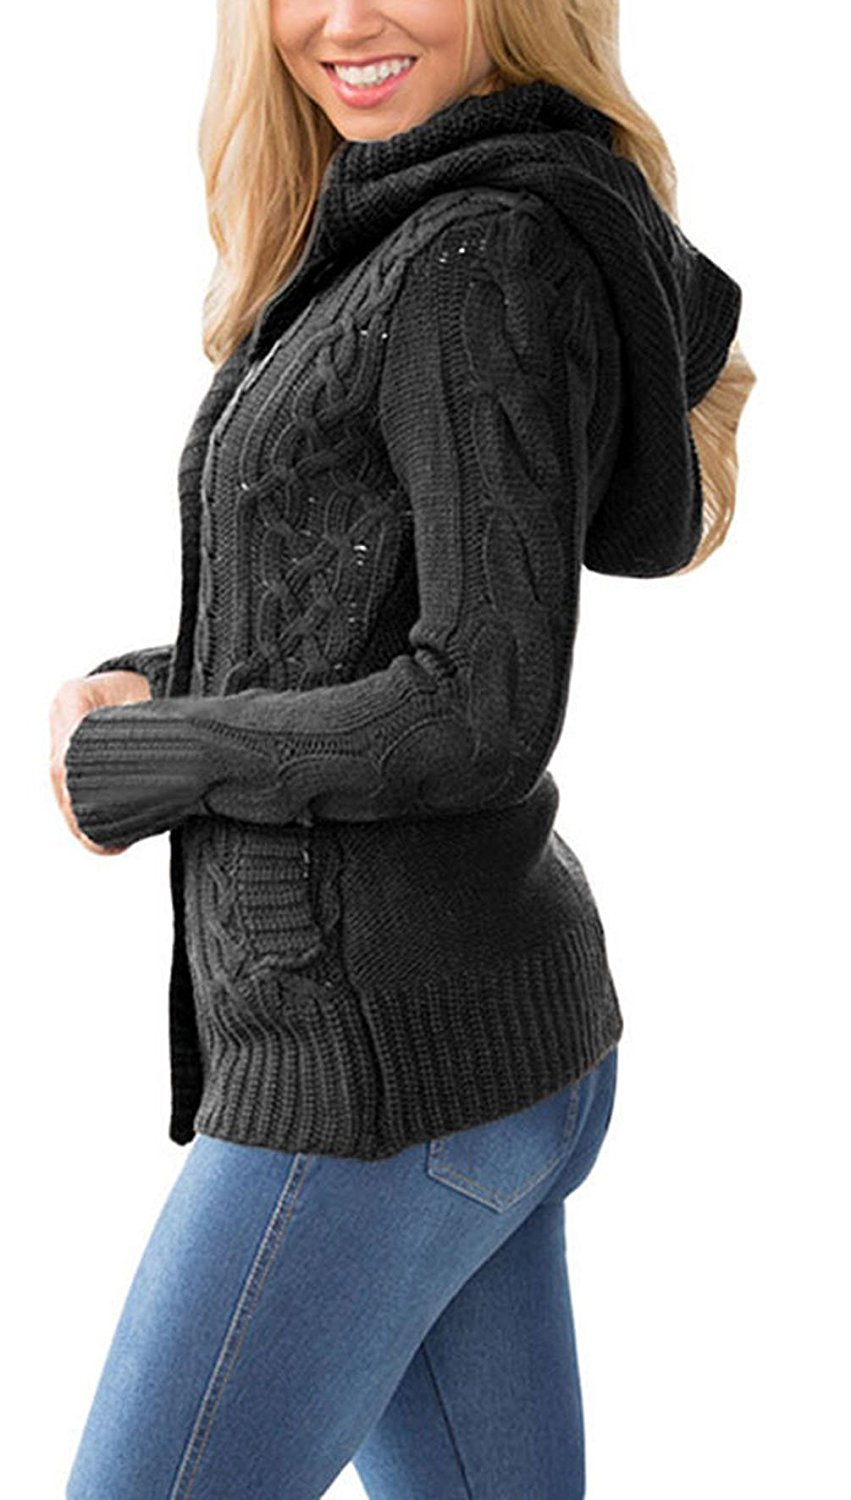 Brighty-U Novel and attractive Women's Hooded Cable Knit Button Down Cardigan Sweaters Fleece Jackets(7 Color,XS-XXL) Dark GreyX-Small